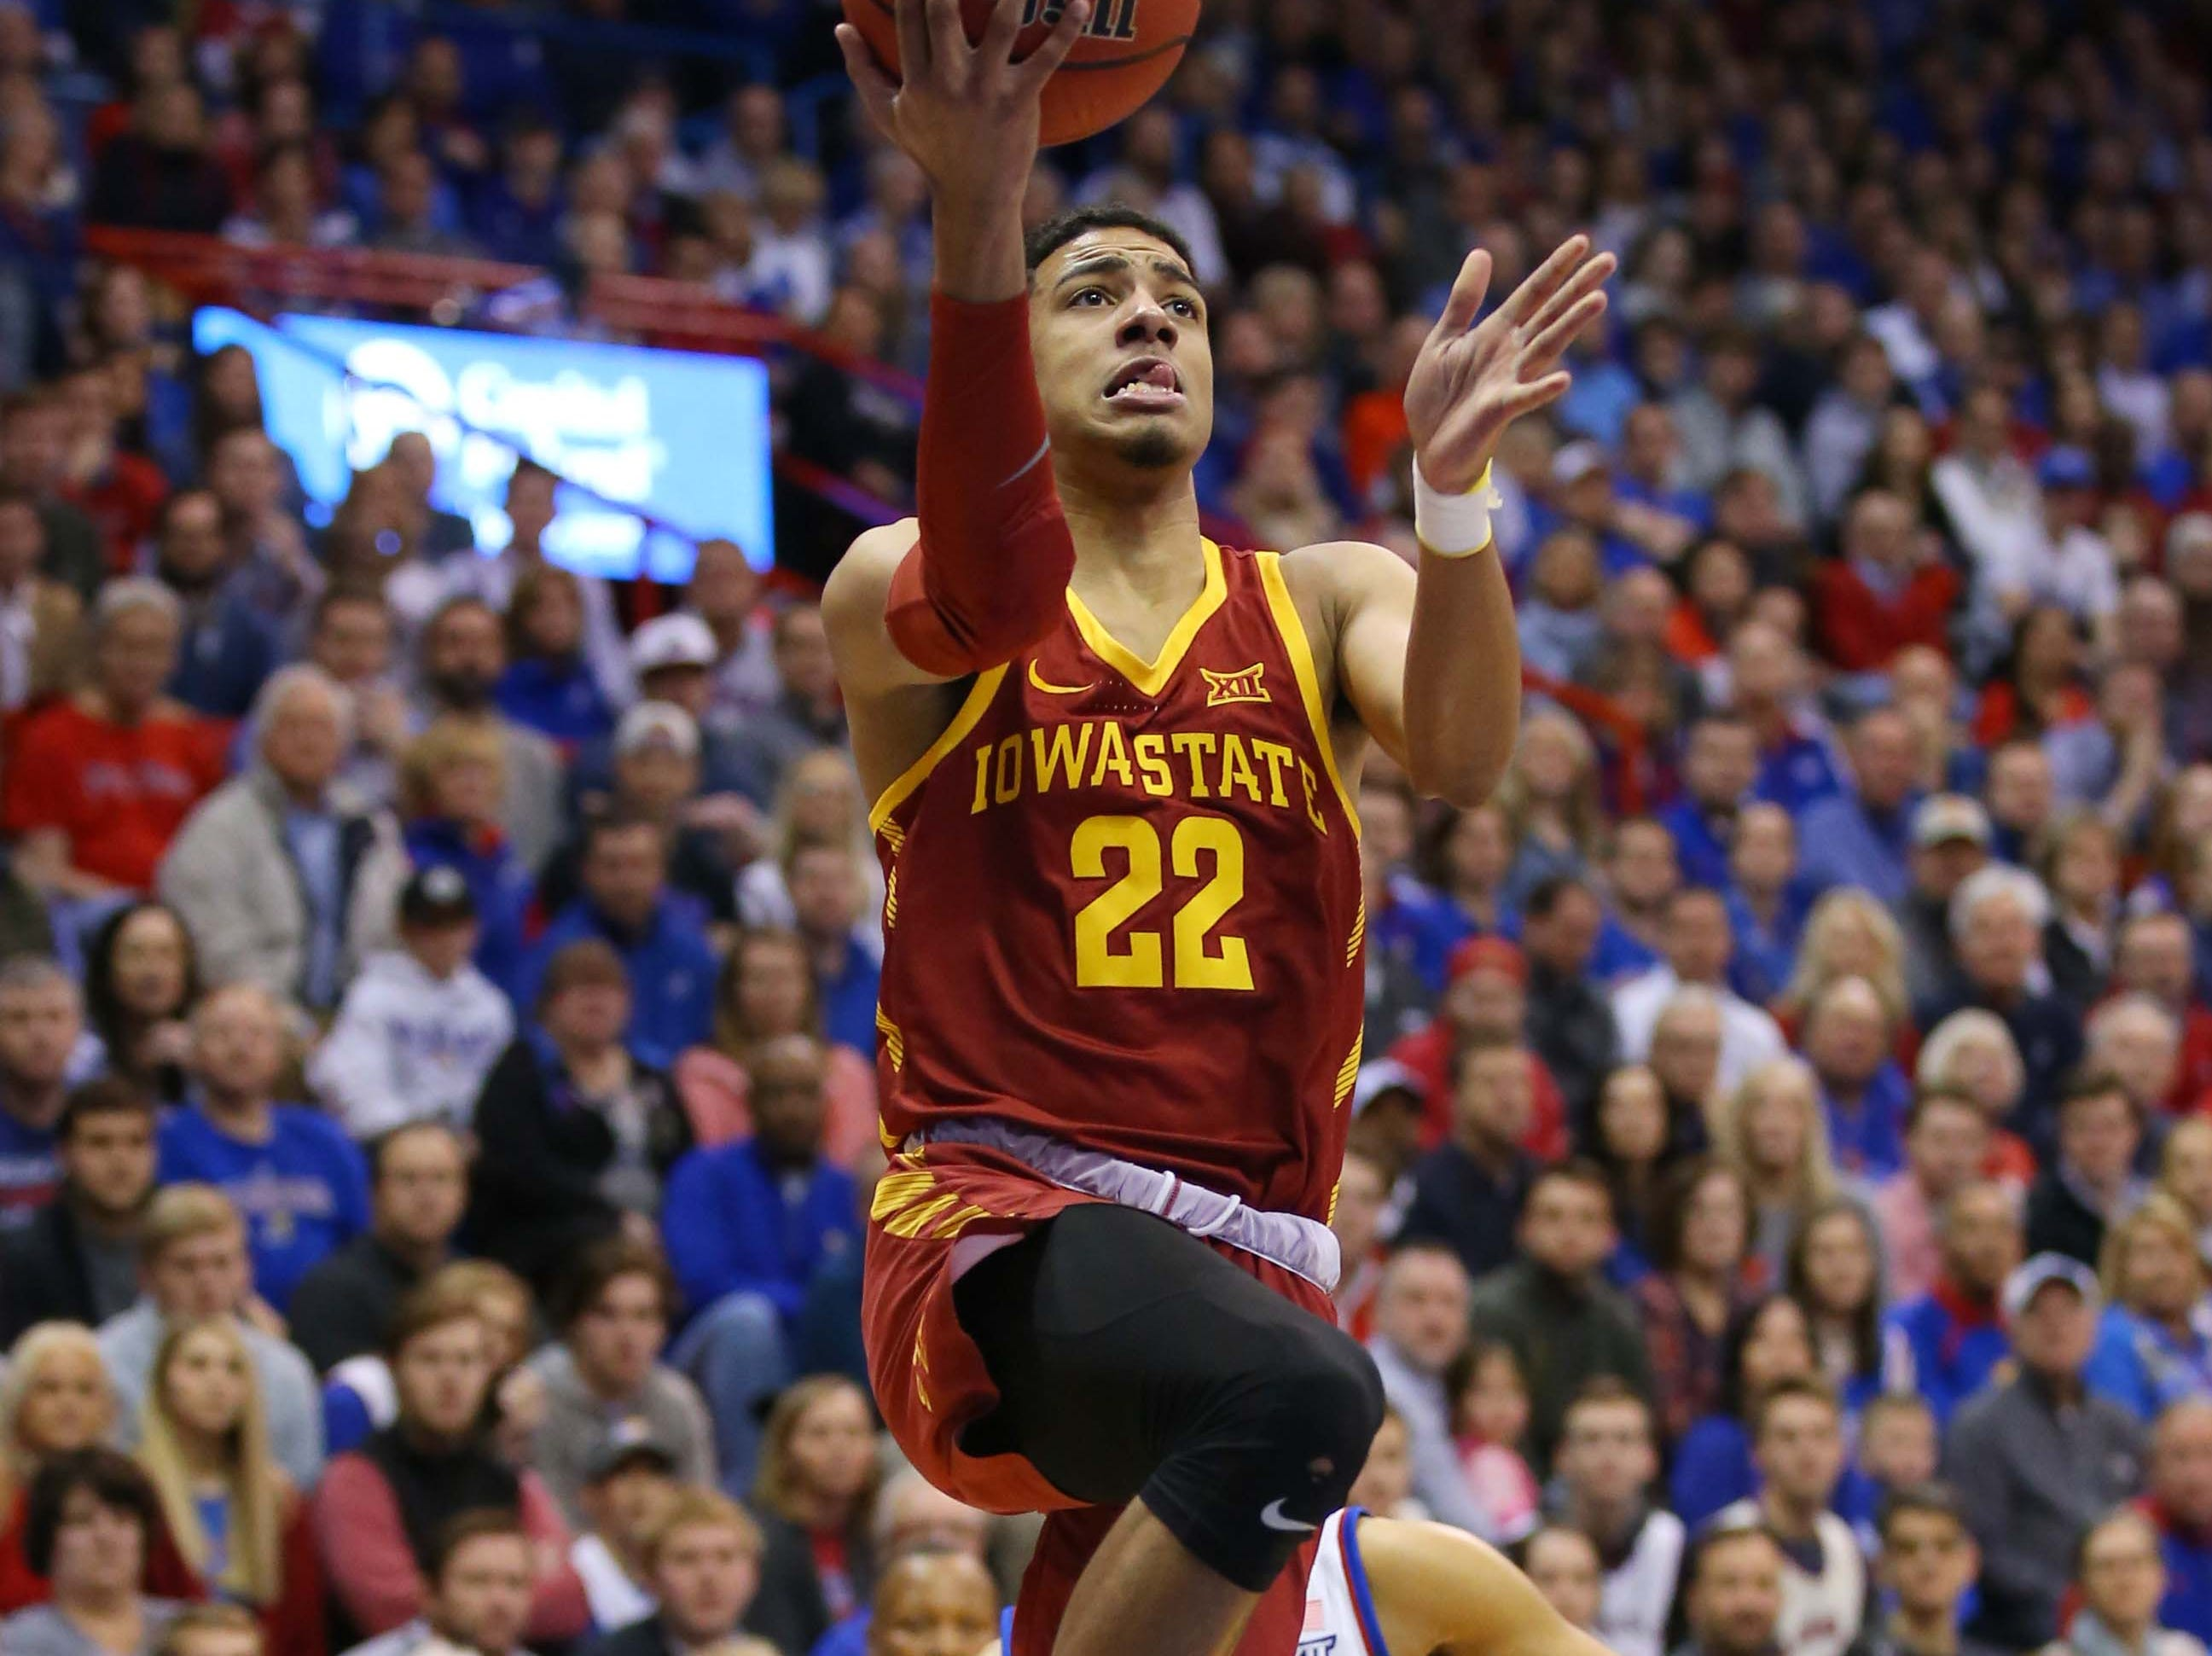 Iowa State Cyclones guard Tyrese Haliburton (22) goes up for a shot as Kansas Jayhawks guard Devon Dotson (11) defends in the first half at Allen Fieldhouse.